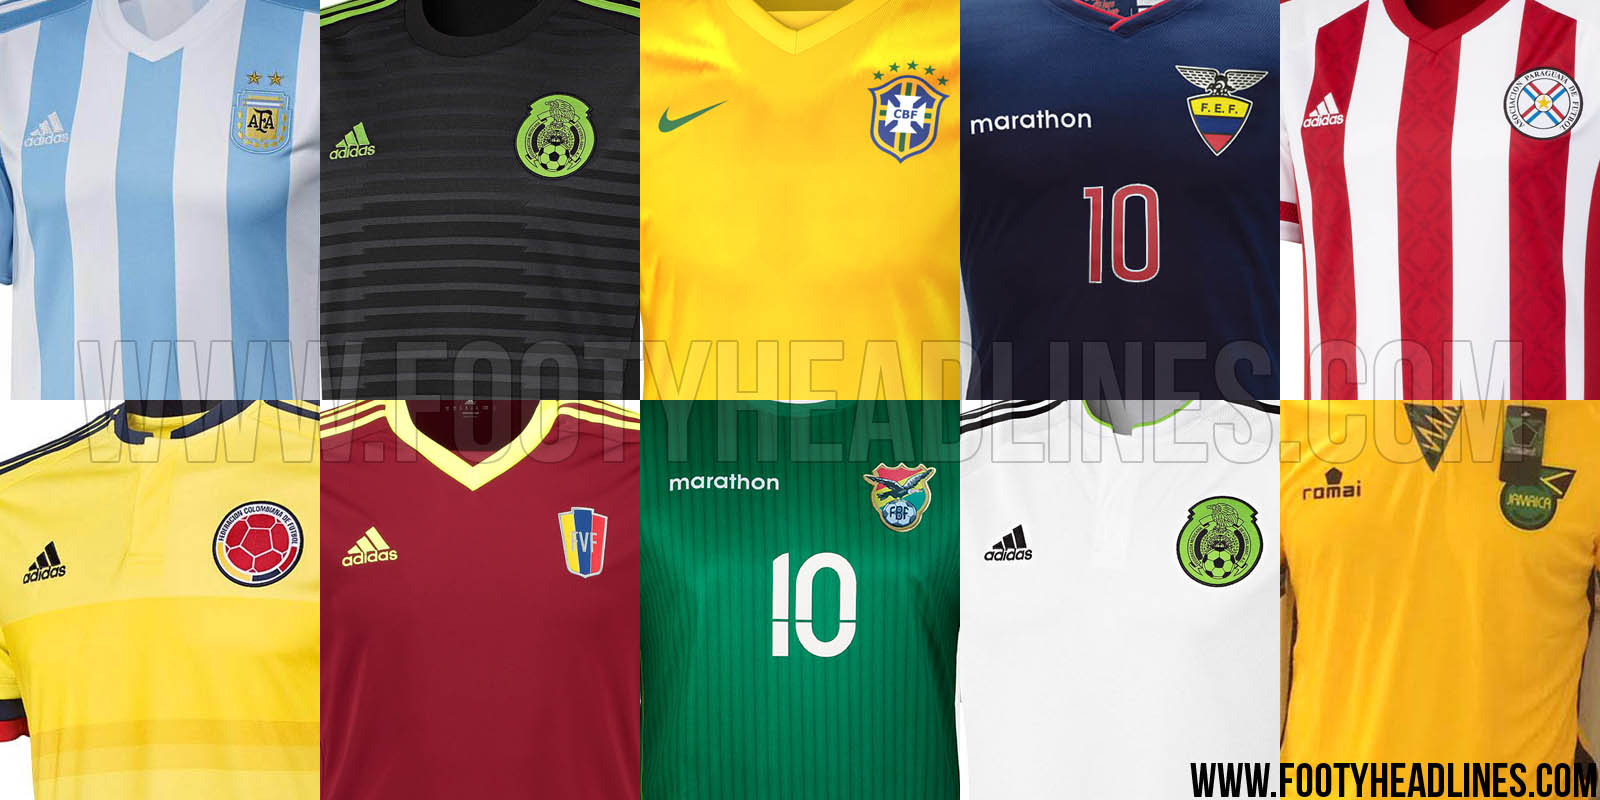 512x512 nike kit chile away pictures free download